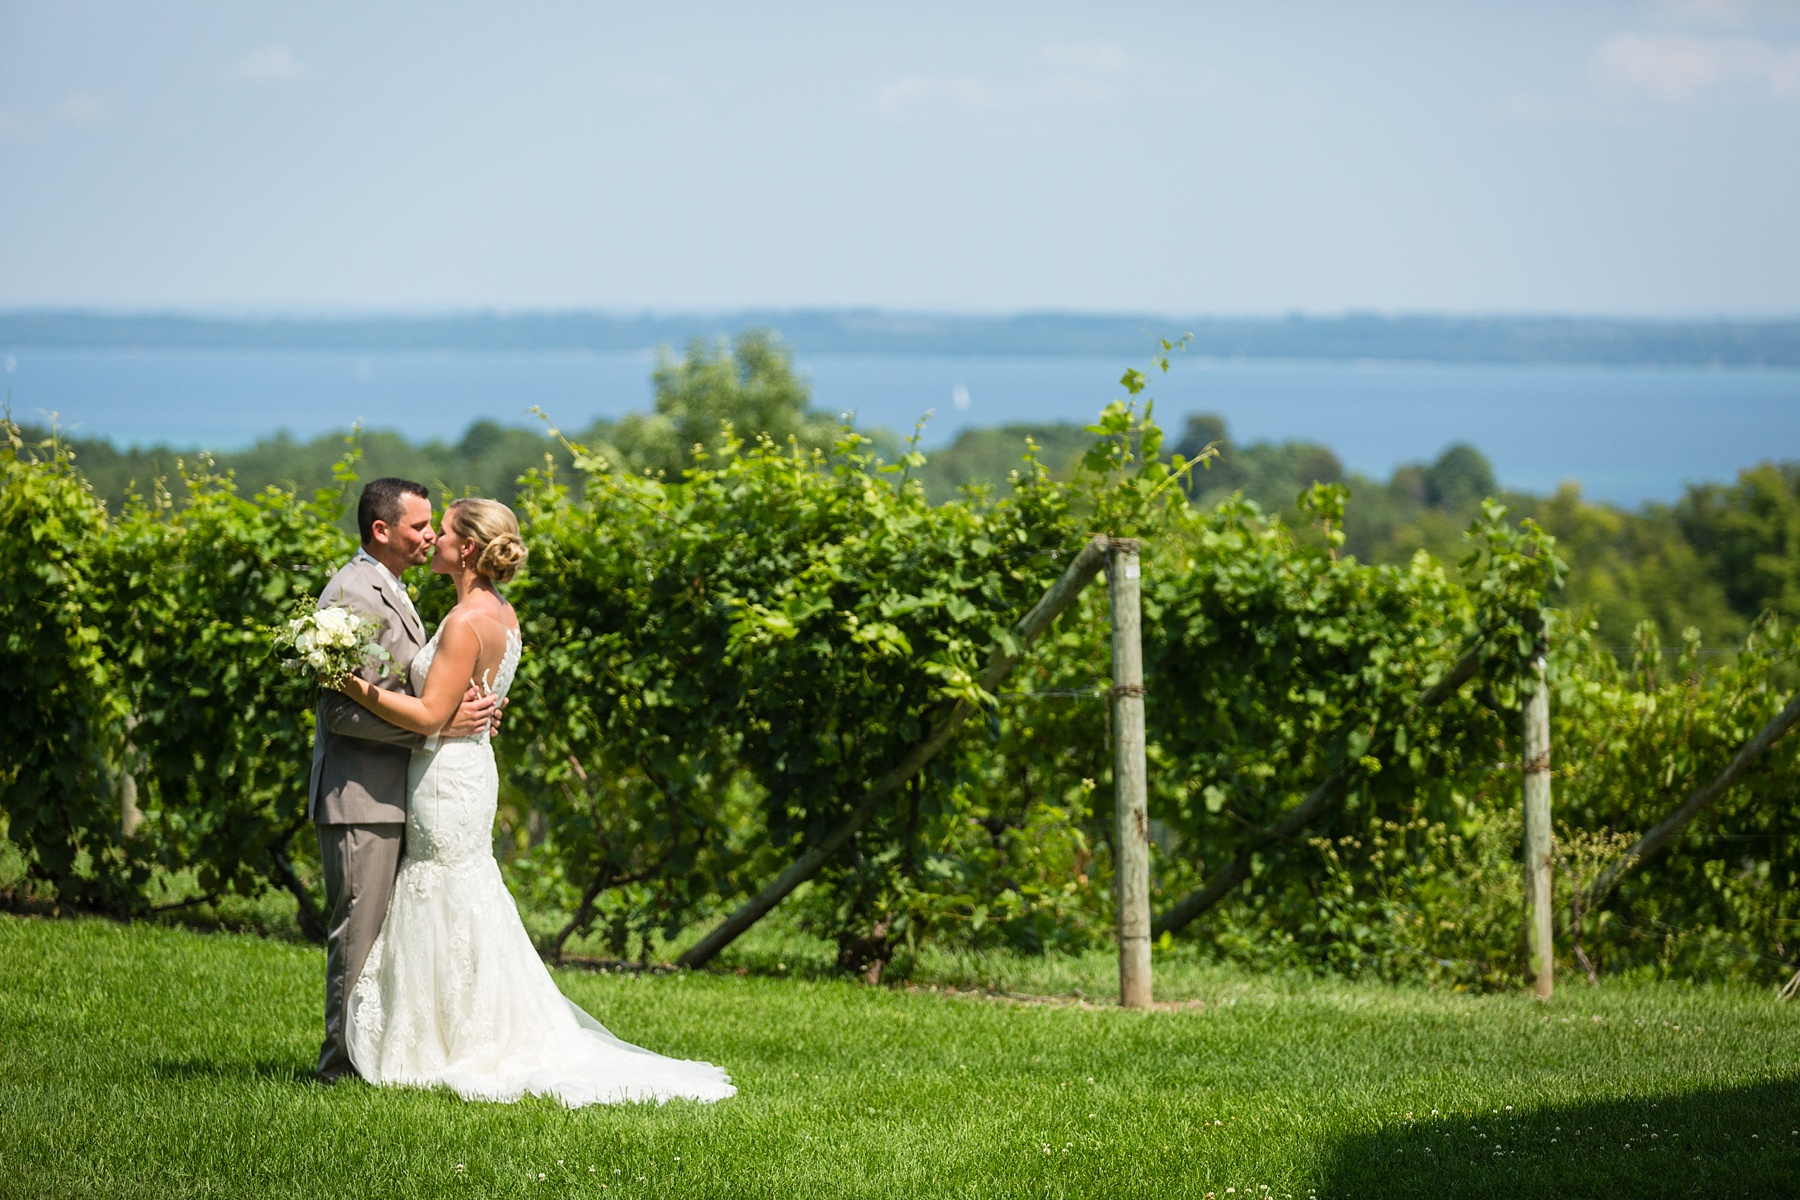 Brandon_Shafer_Photography_Lauren_Vasile_Ciccone_Vineyard_Suttons_Bay_Wedding_0028.jpg